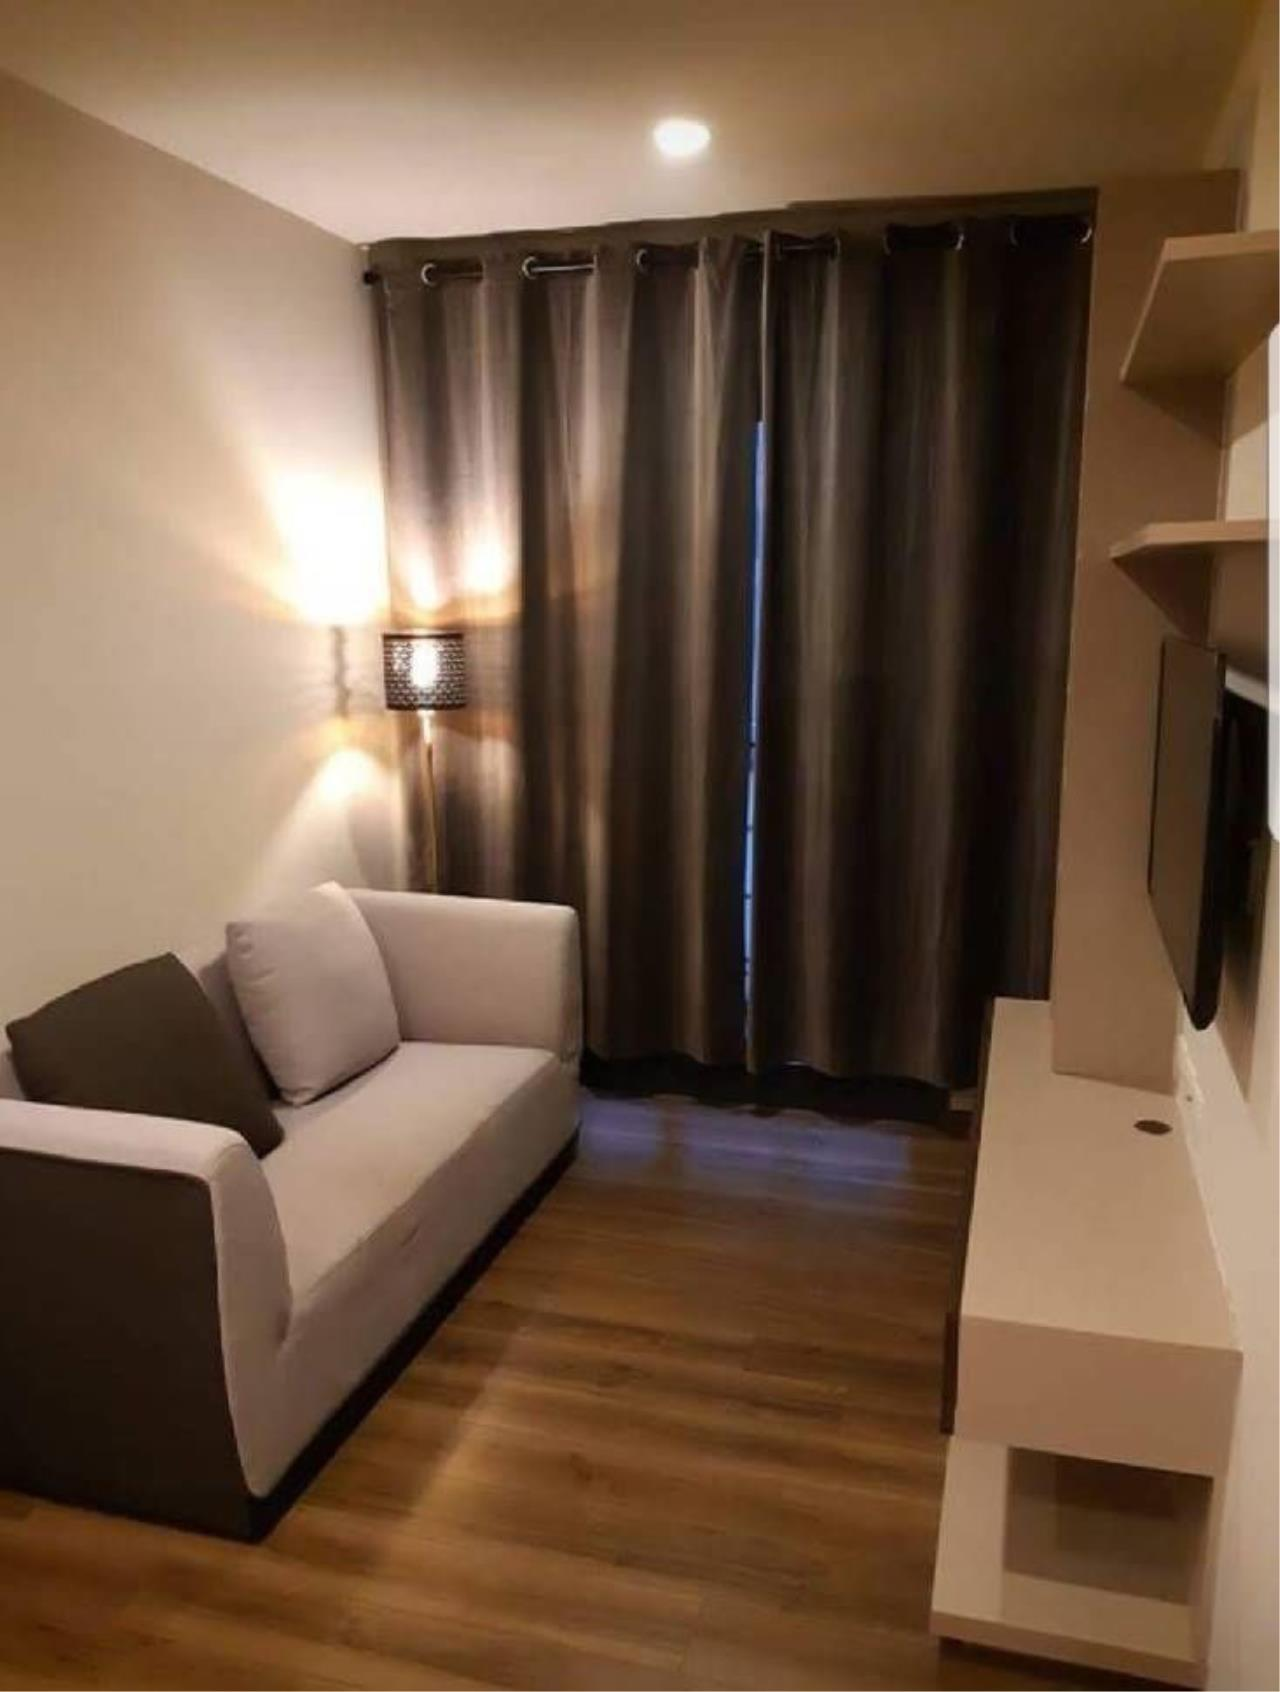 Quality Life Property Agency's Onyx [For Rent] 4